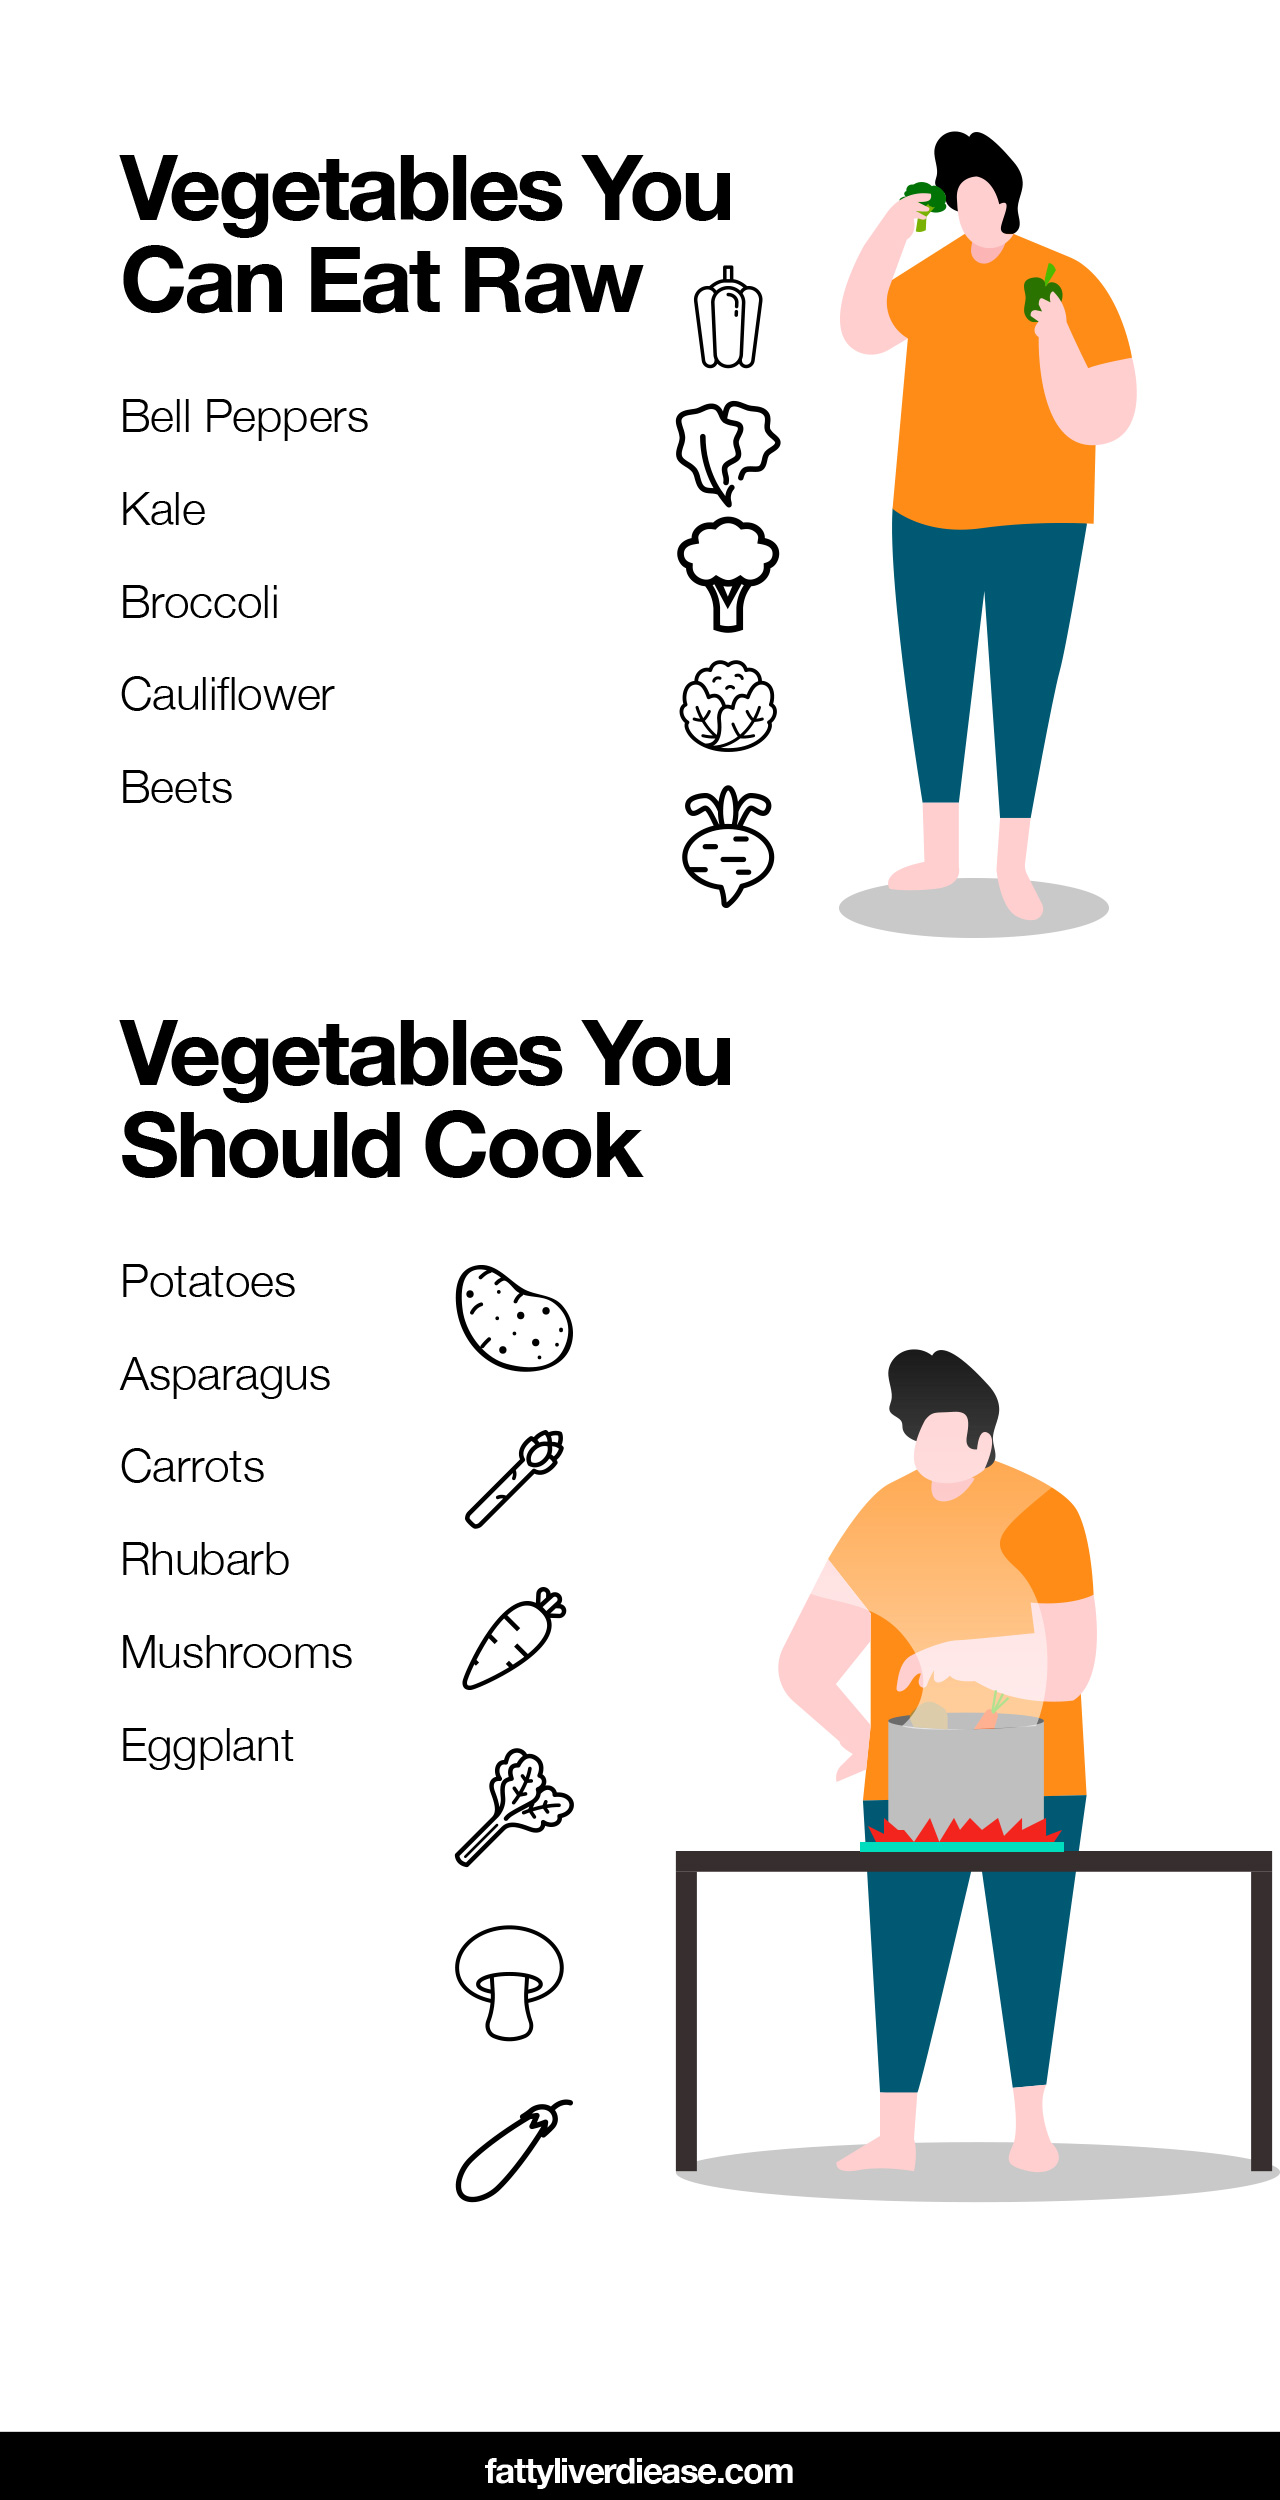 Vegetables You Can Eat Raw